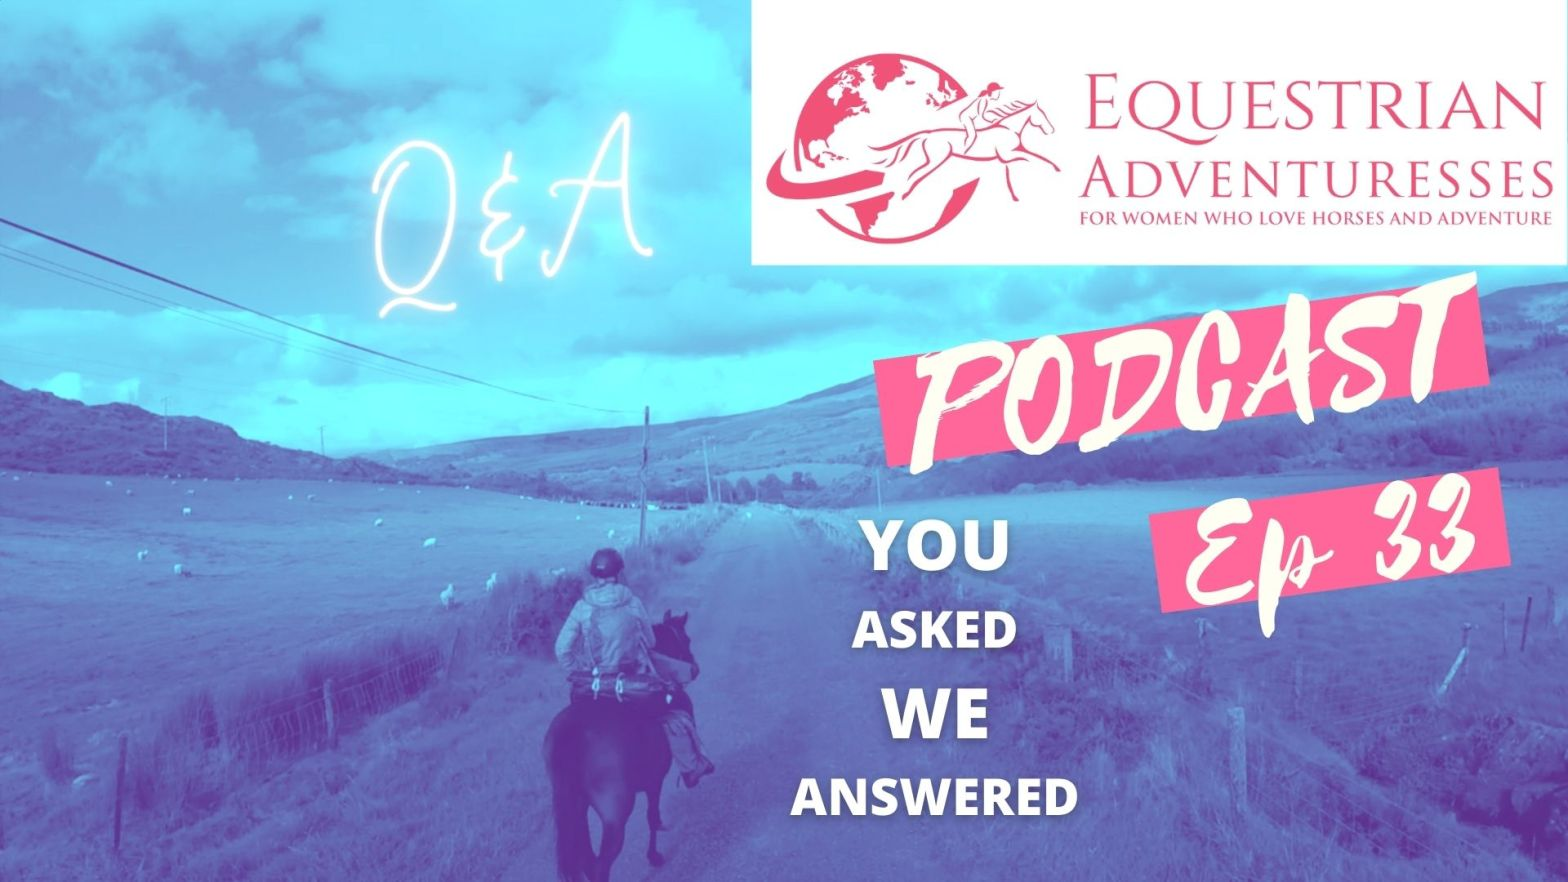 Equestrian Adventuresses Travel and Horse Podcast Ep 33 - Q&A Traveling Internationally with Your Horse: You asked them we've answered them